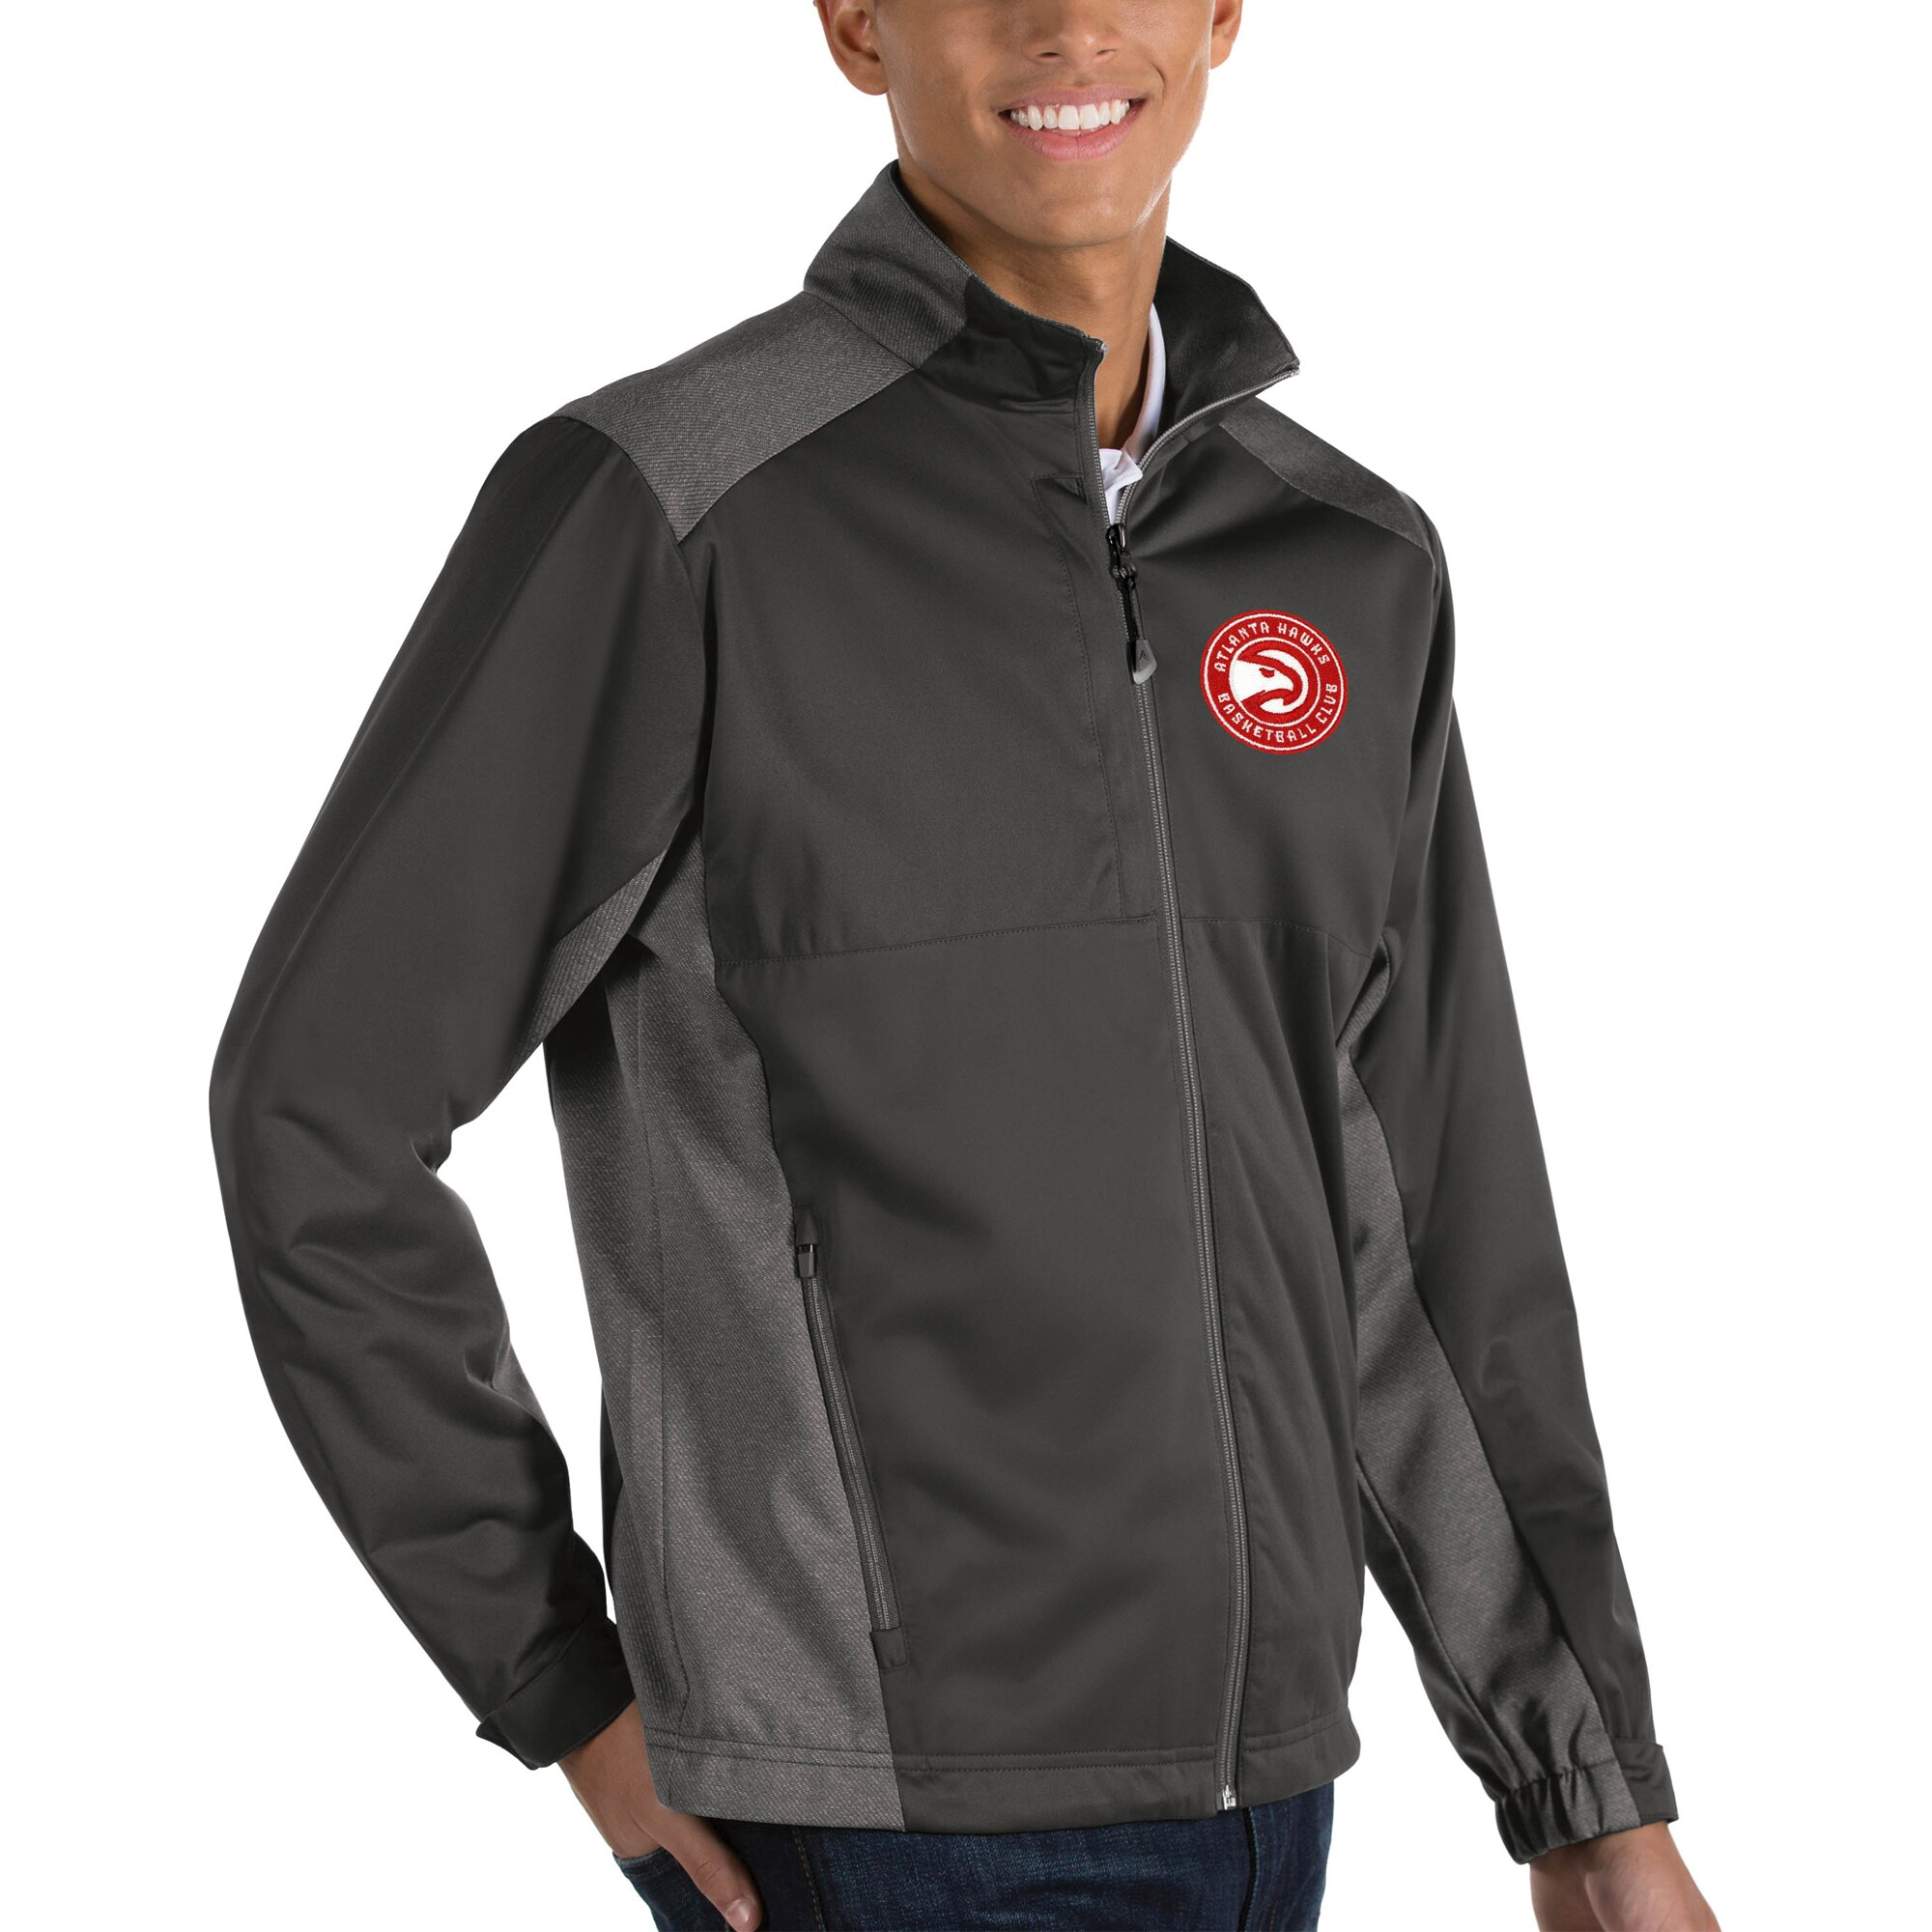 Atlanta Hawks Antigua Revolve Big & Tall Full-Zip Jacket - Charcoal